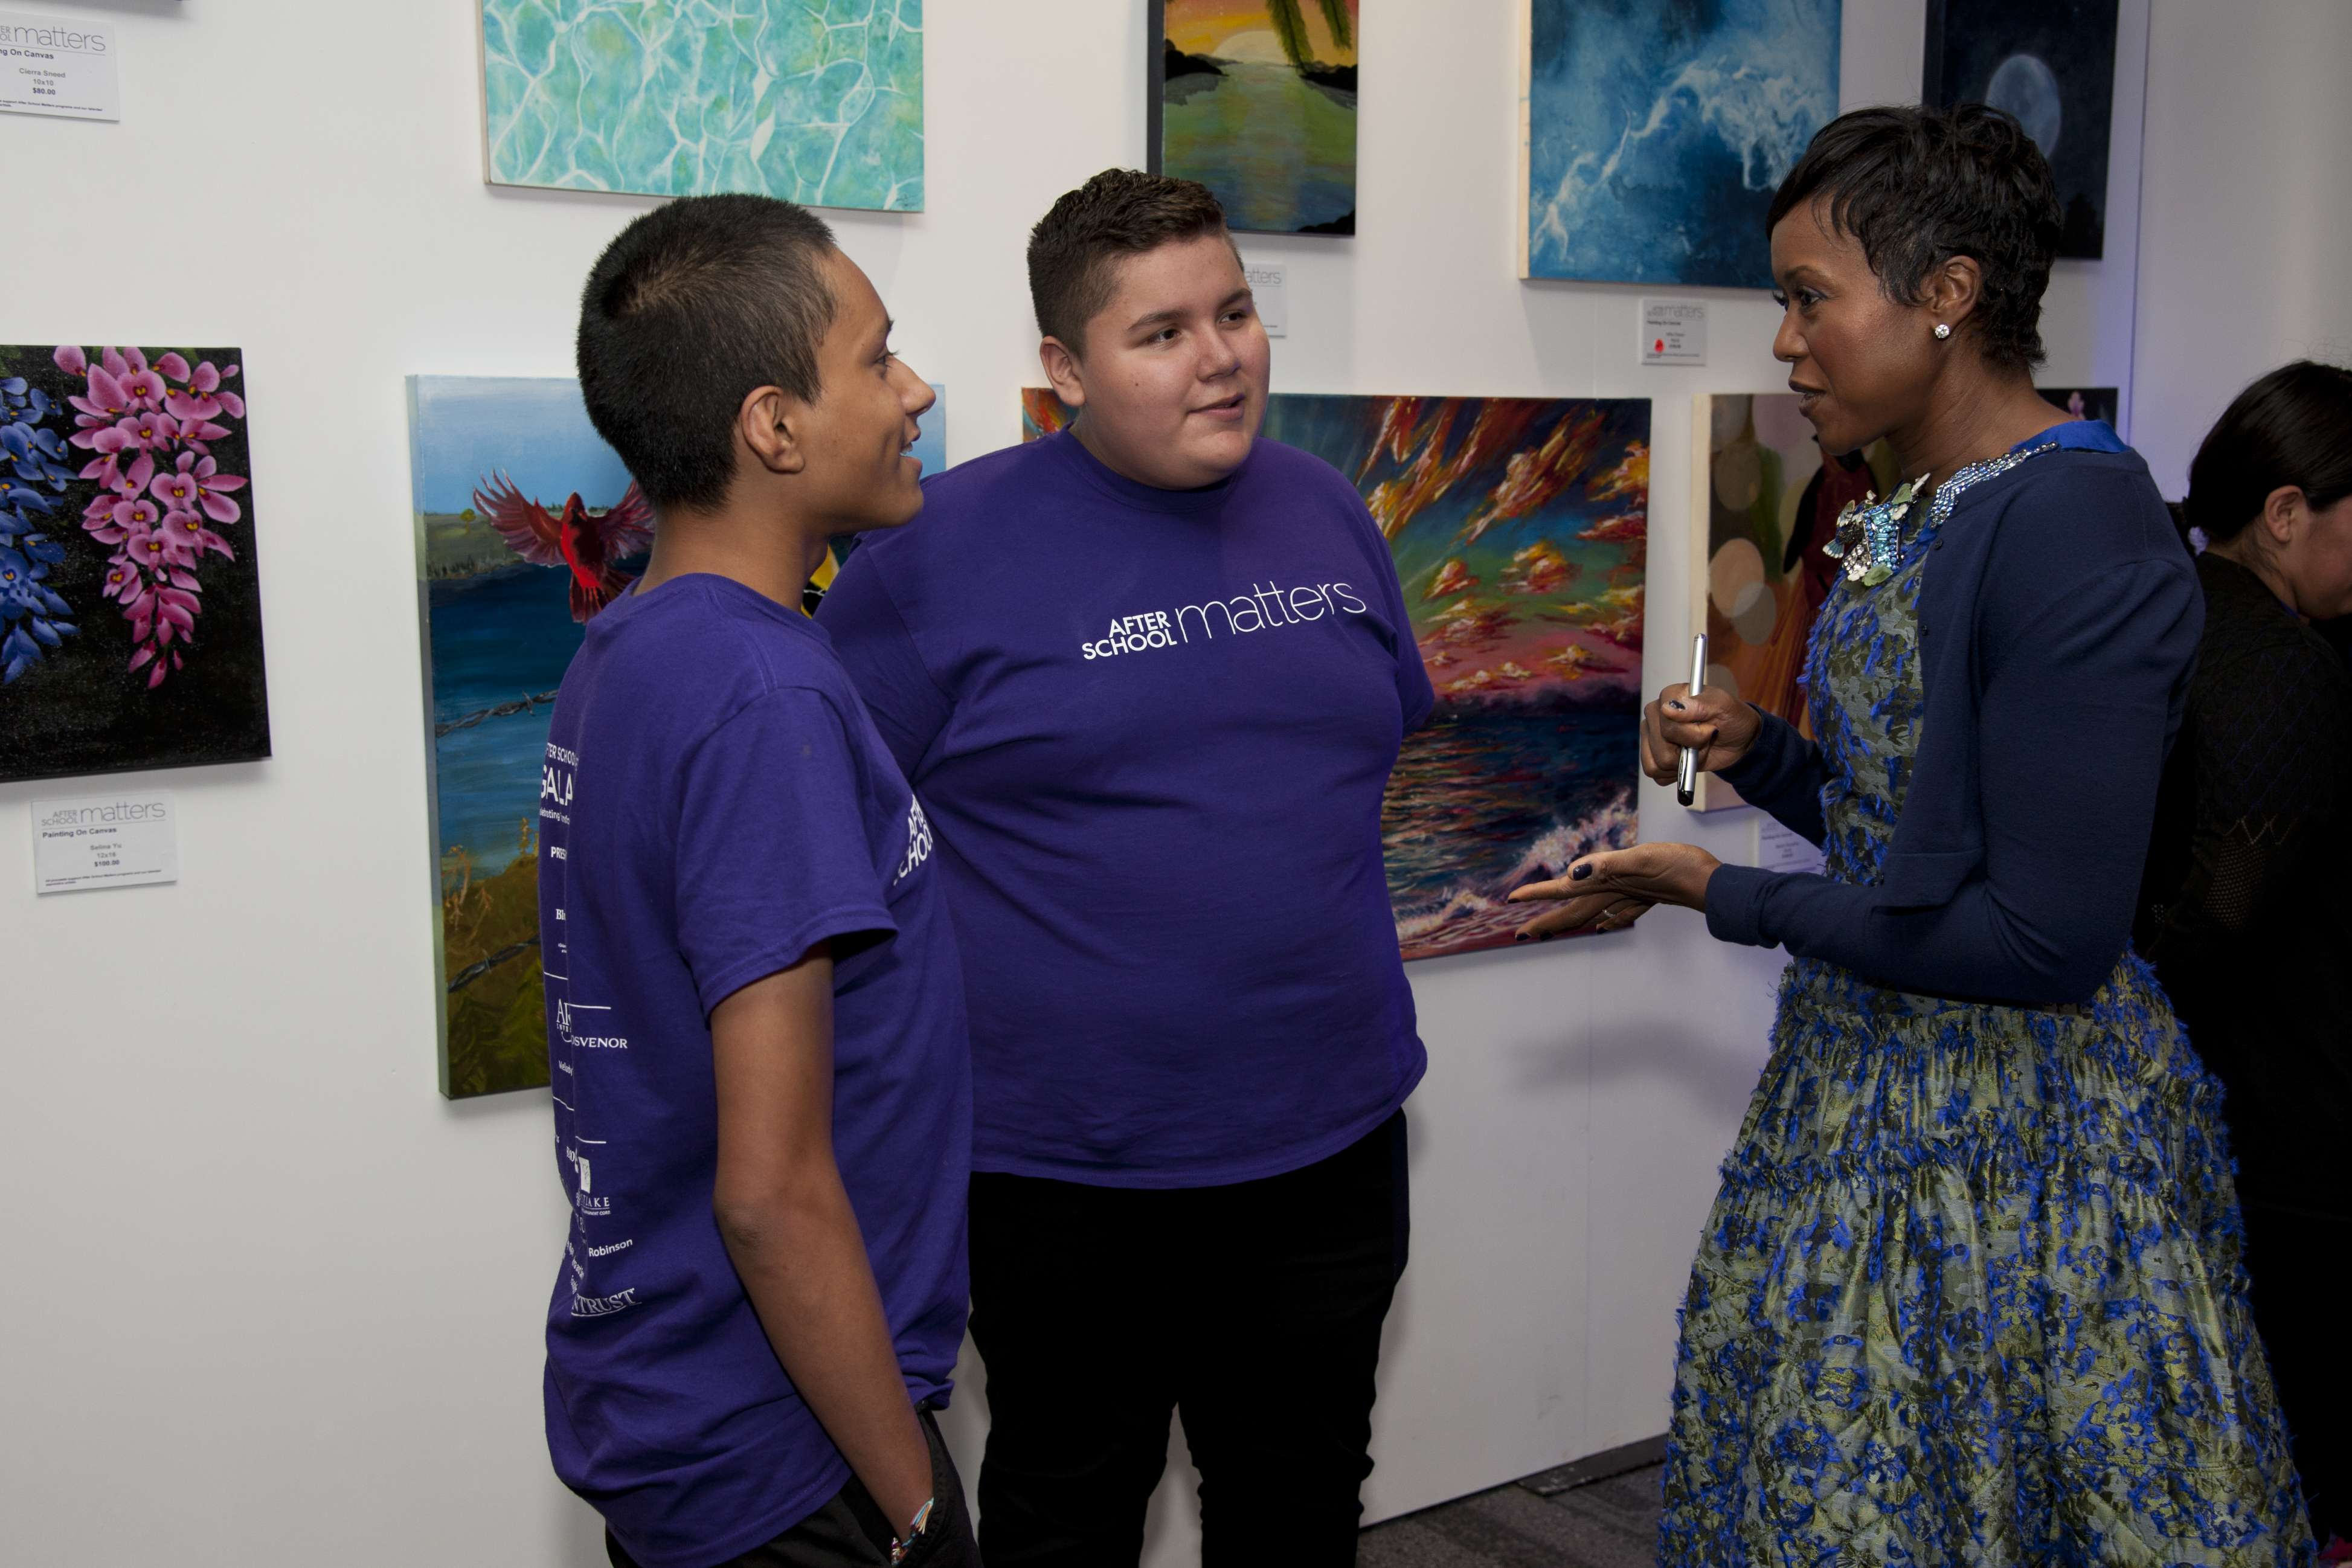 <p>After School Board Chair Mellody Hobson speaks to teens Antonio and Silbano during the gallery hour at After School Matters Annual Gala on September 18, 2017. Photo credit: Robert Carl</p>